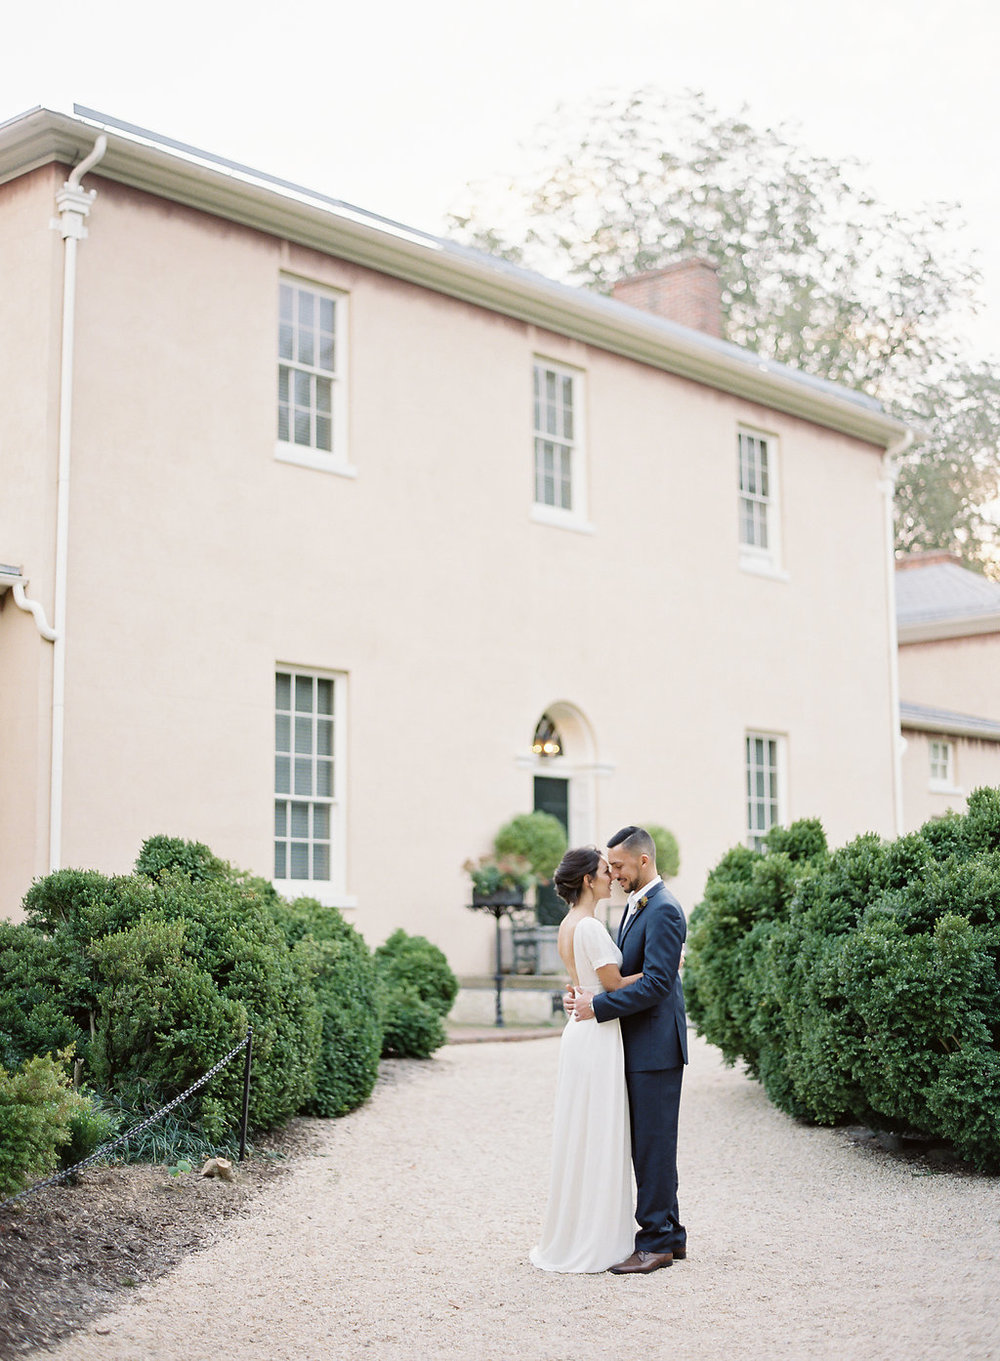 French Inspired Fall Wedding with Fine Art Destination Wedding Planner East Made Event Company and DC Film Photographer Vicki Grafton Photography at Tudor Place in Washington DC-117.jpg